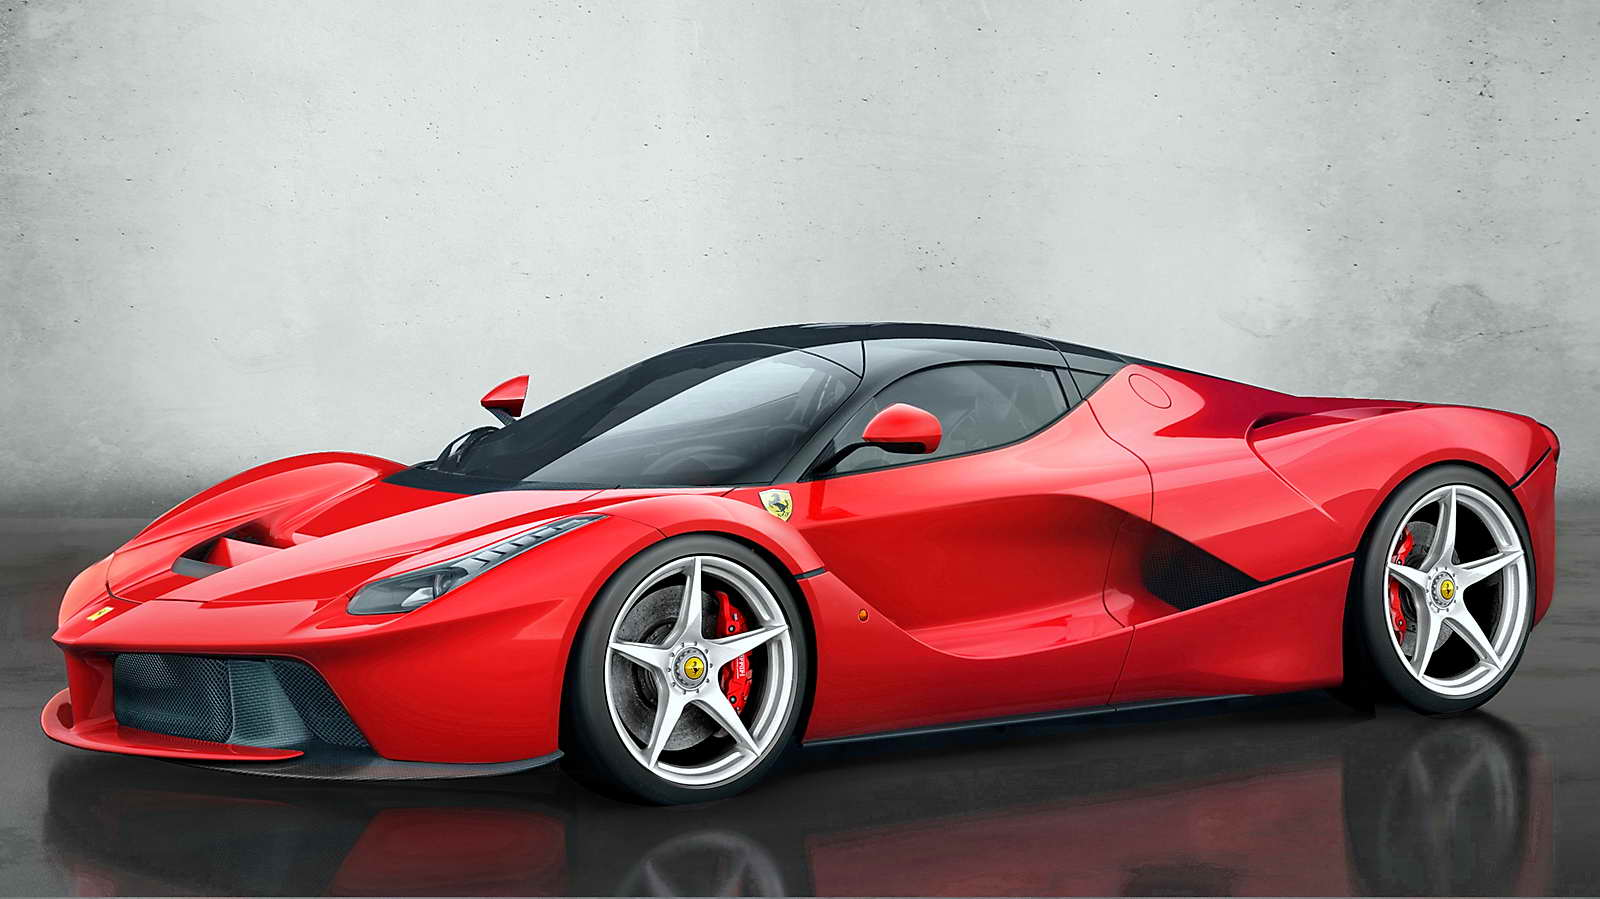 Ferrari's new hypercar is coming – Will replace the LaFerrari by 2022